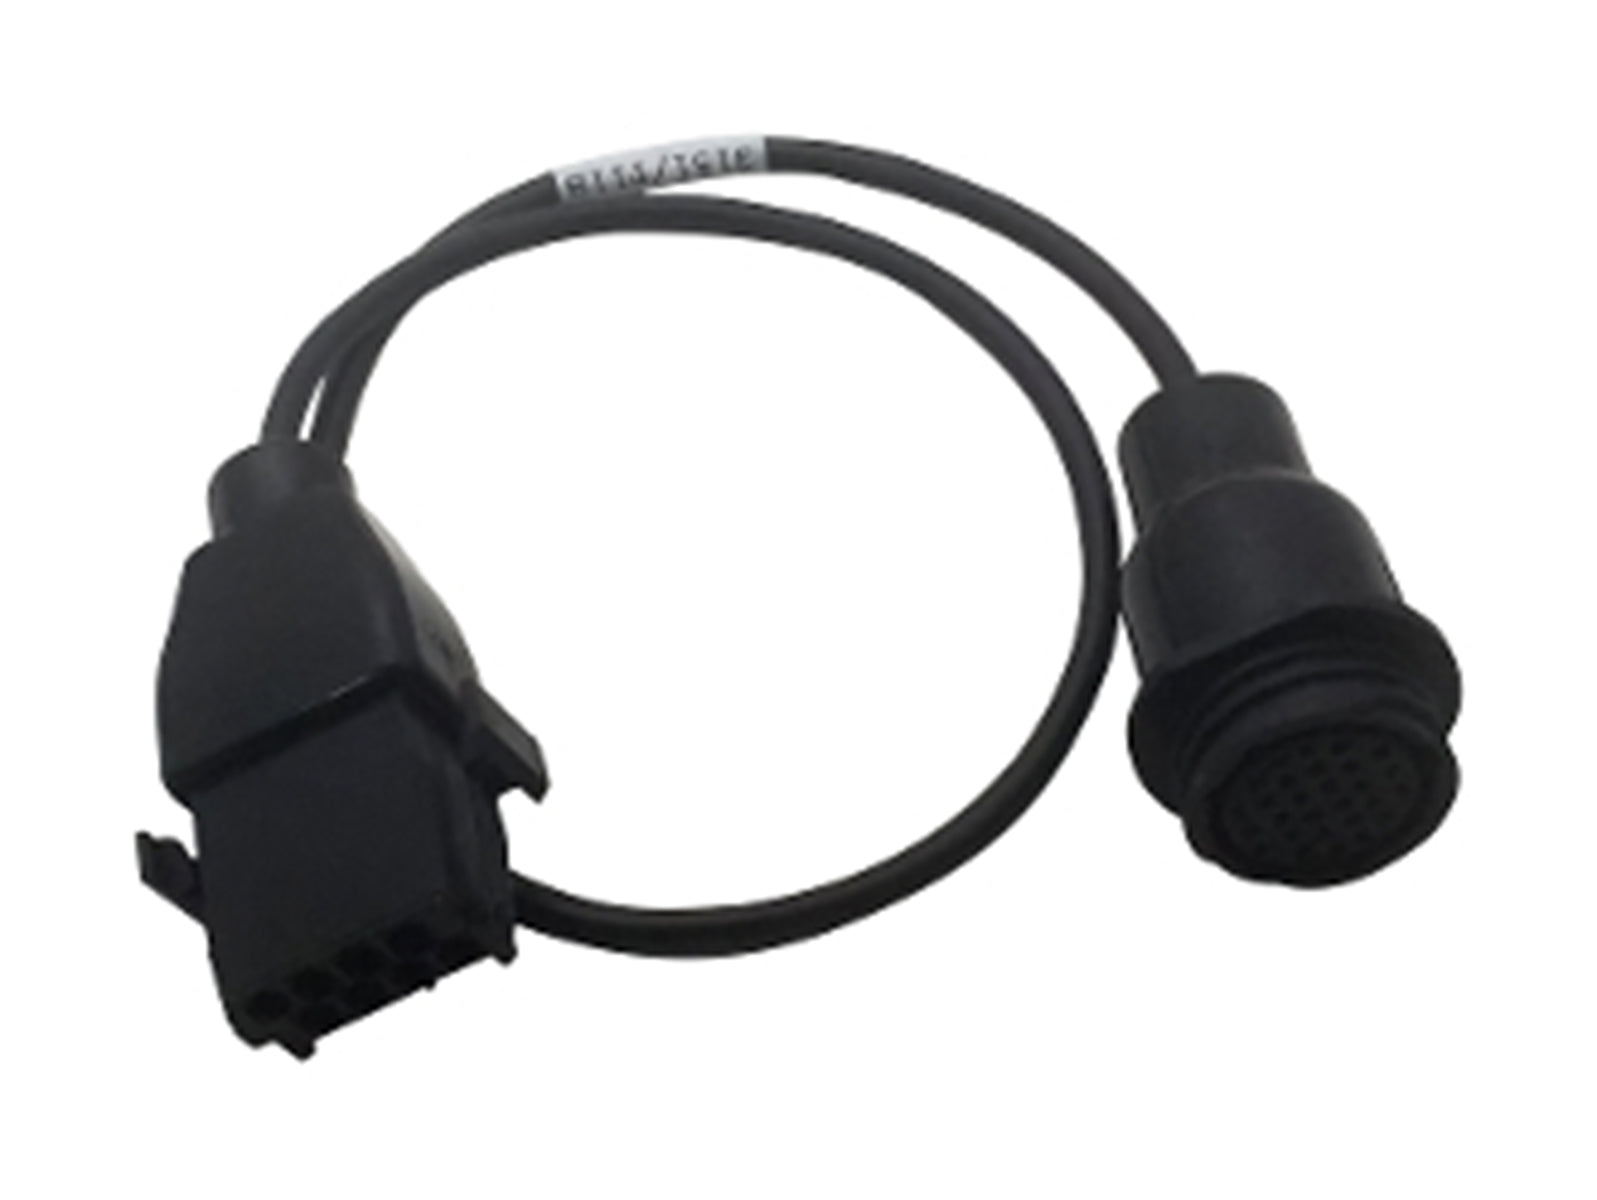 TEXA Off-Highway Volvo 8 Pin Cable (T11B)